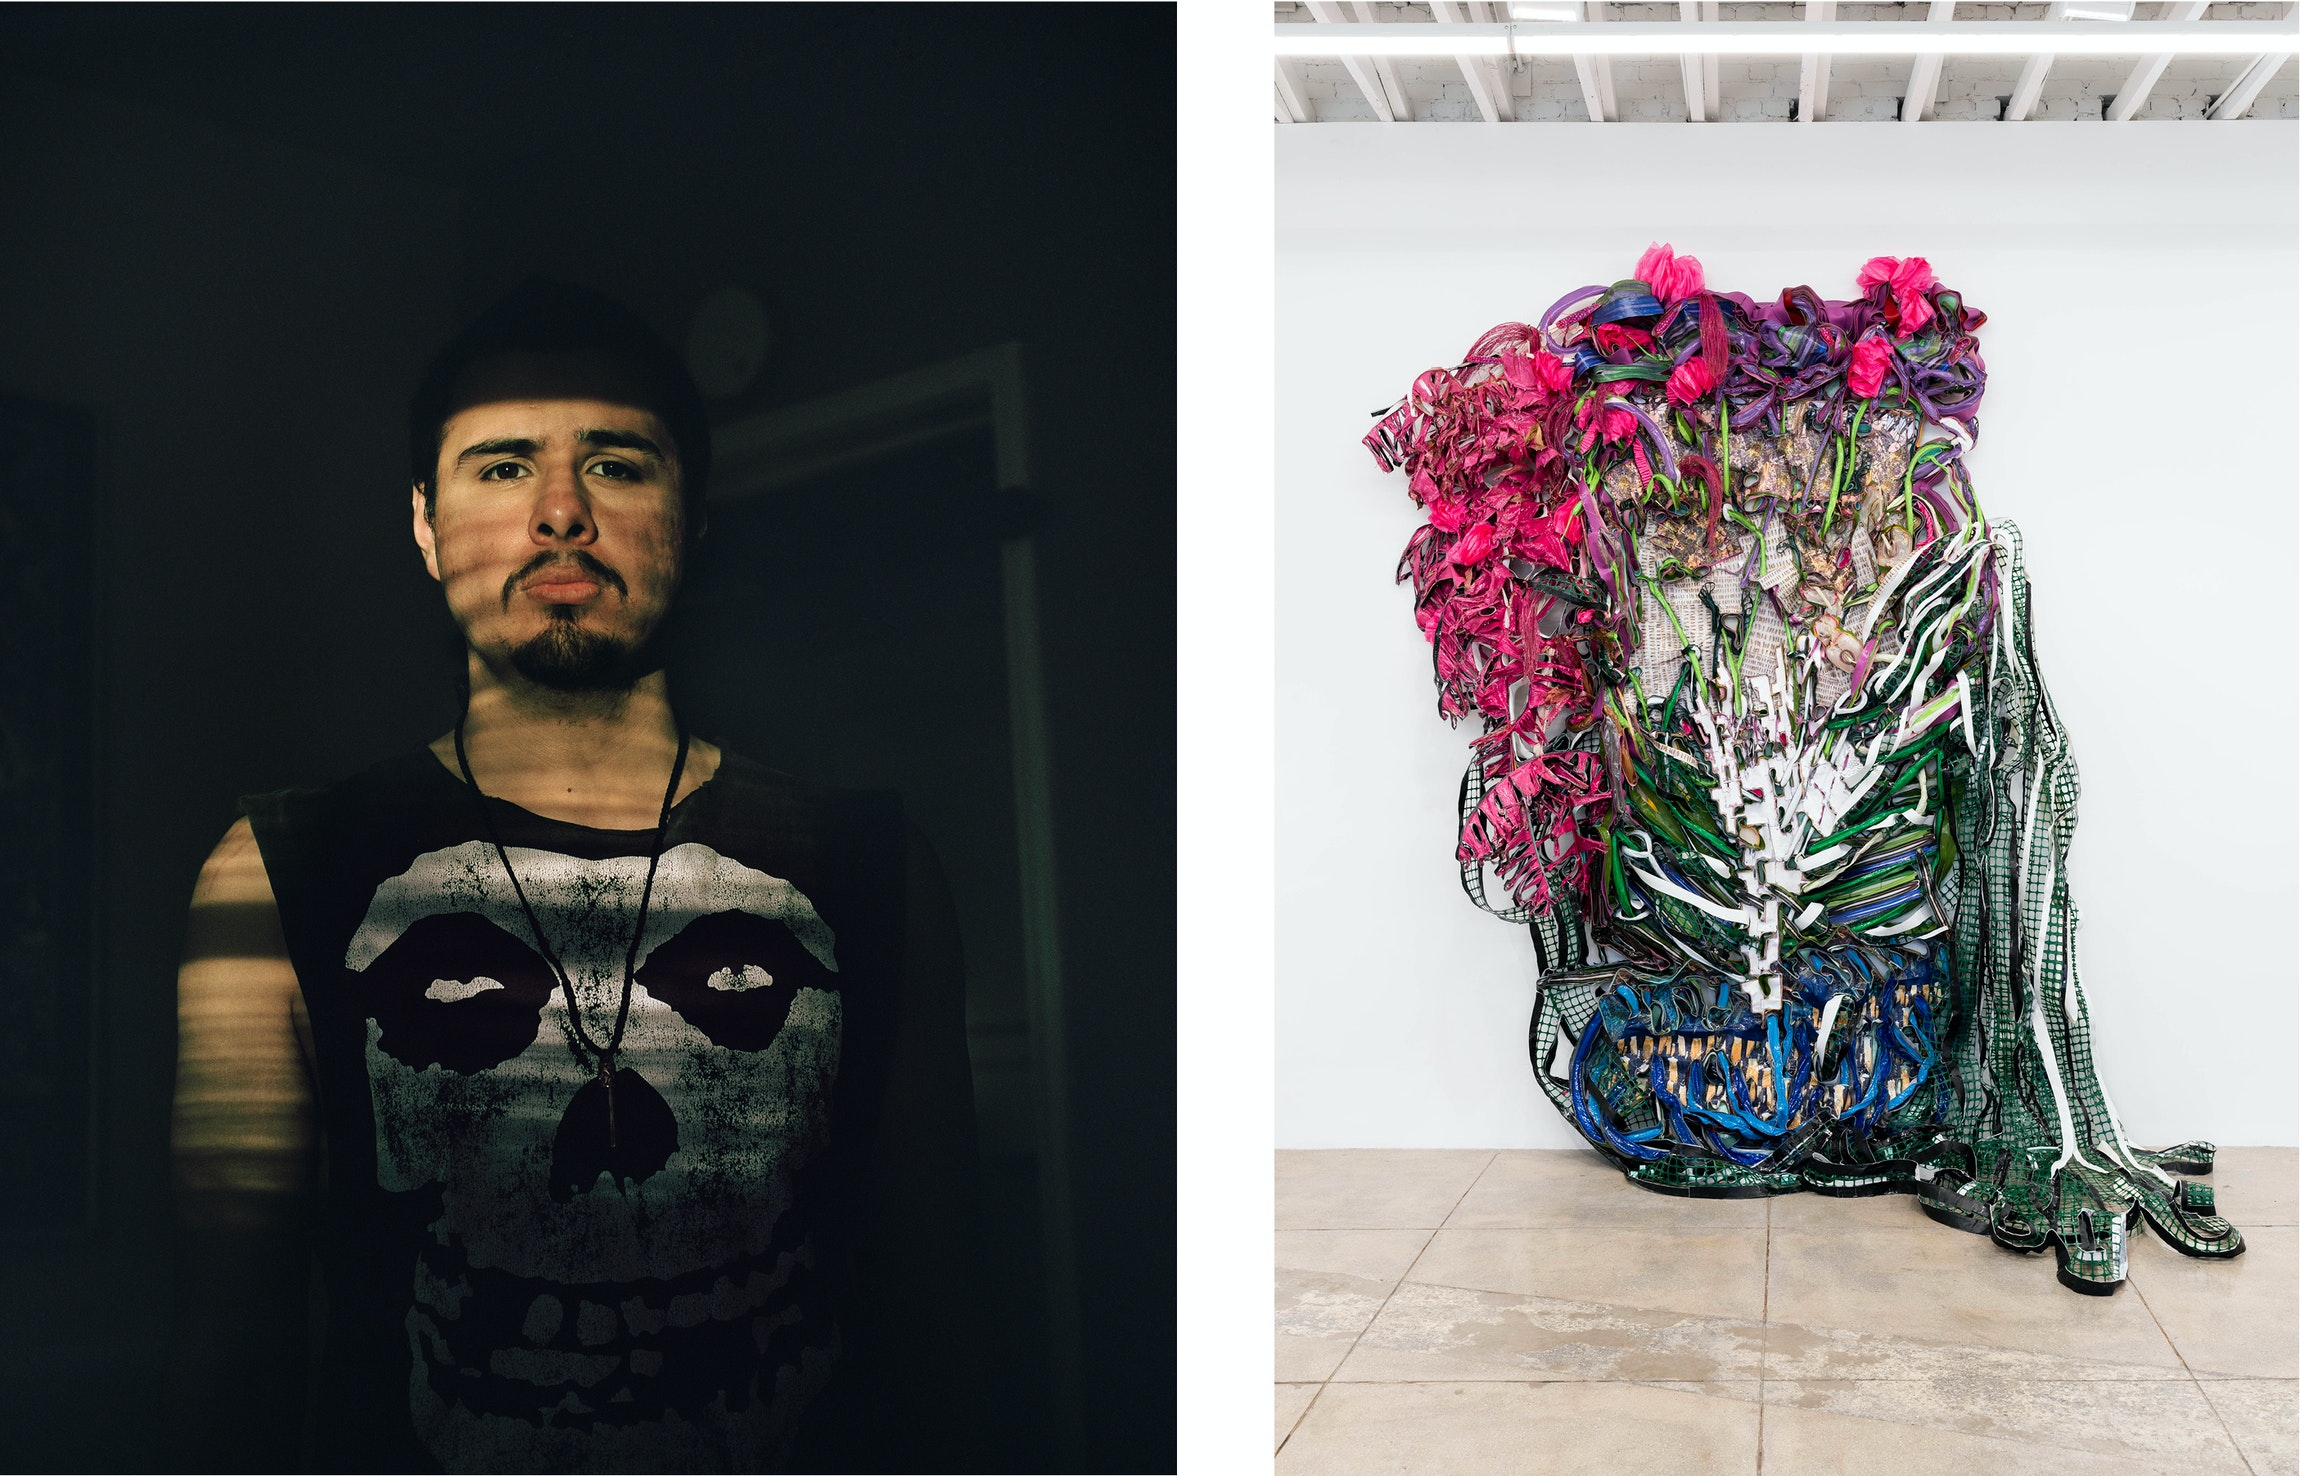 LEFT TO RIGHT: Star Montana, Frankie, 2019. Photo by Star Montana. Alicia Piller, Nature of a stately being. Outstretched arms, bursting with newborn stars., 2019. Mixed media. 135 x 107 x 53 inches. Photo by Ruben Diaz.